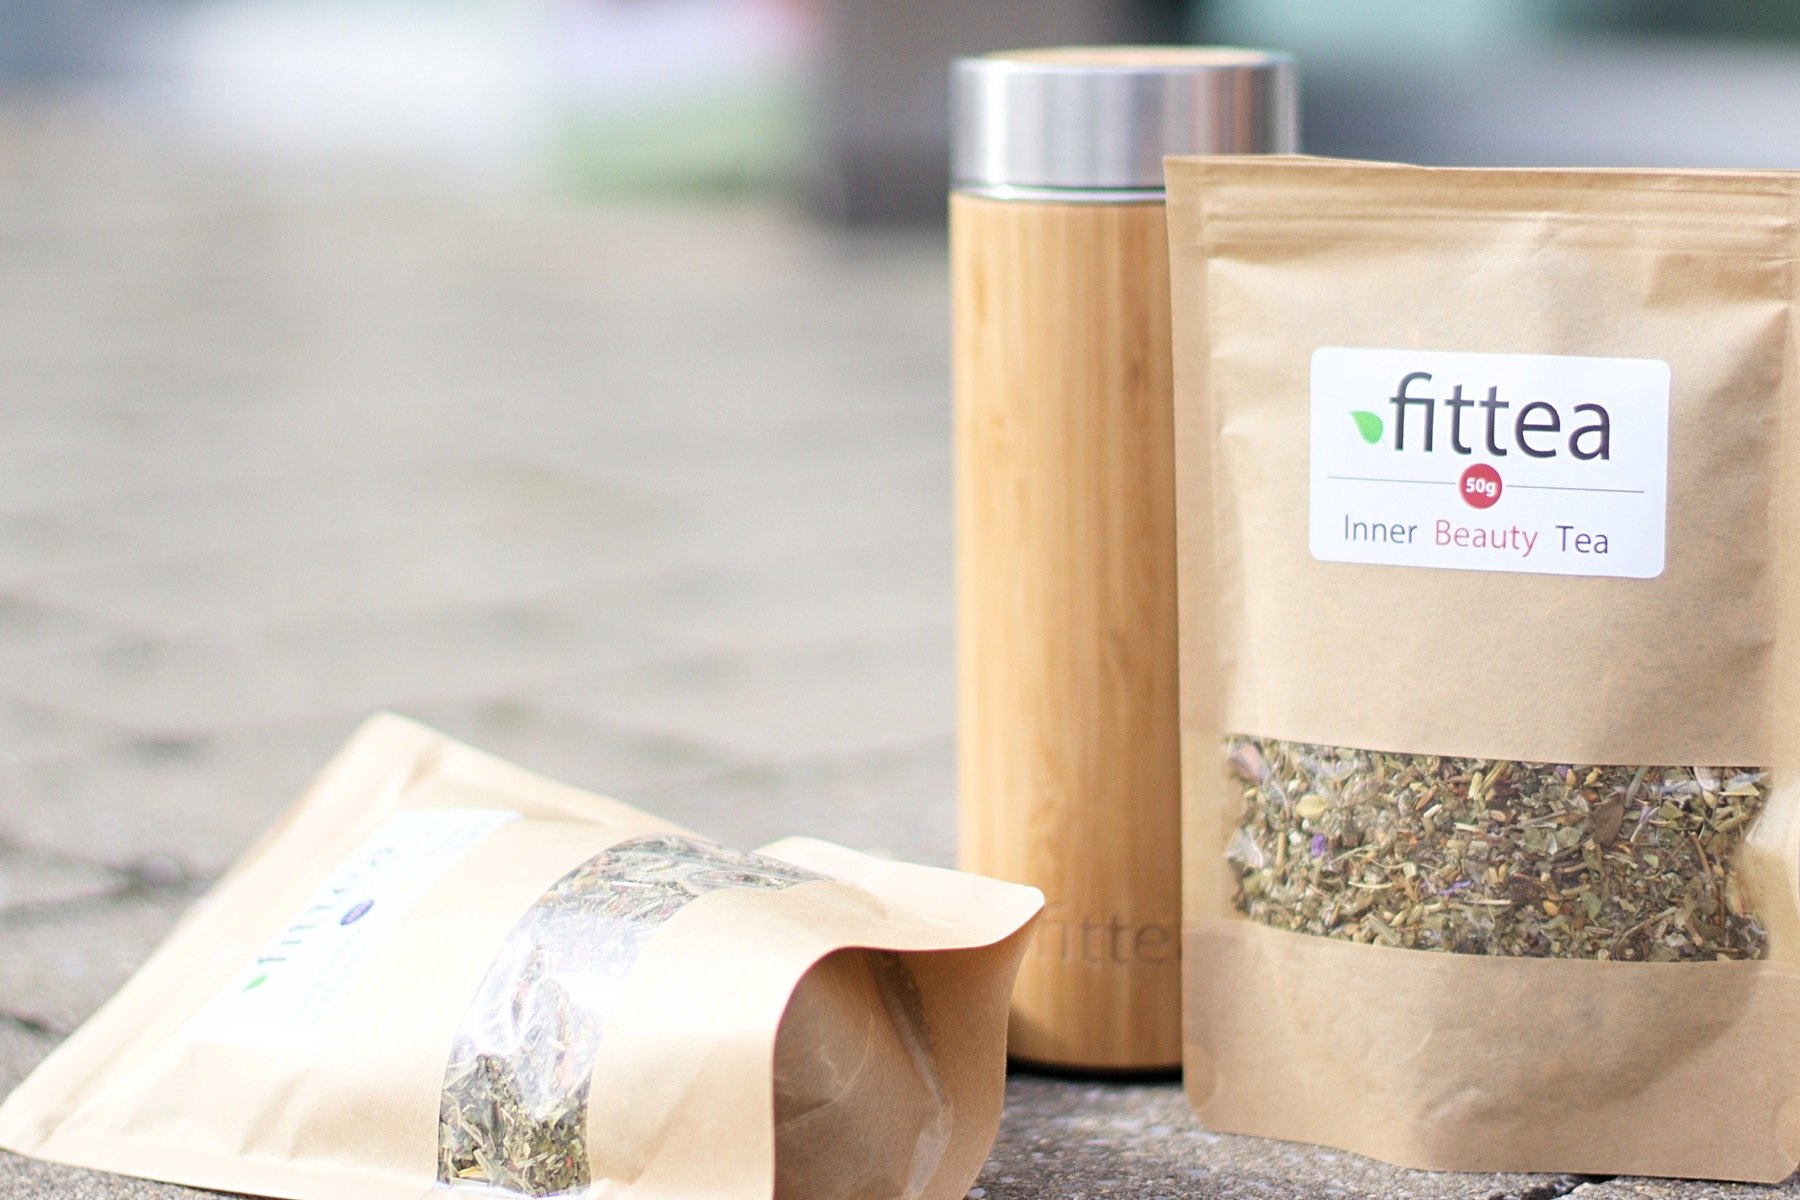 jenna minnie jennaminnie fashion blog fittea fittea.eu detox tea